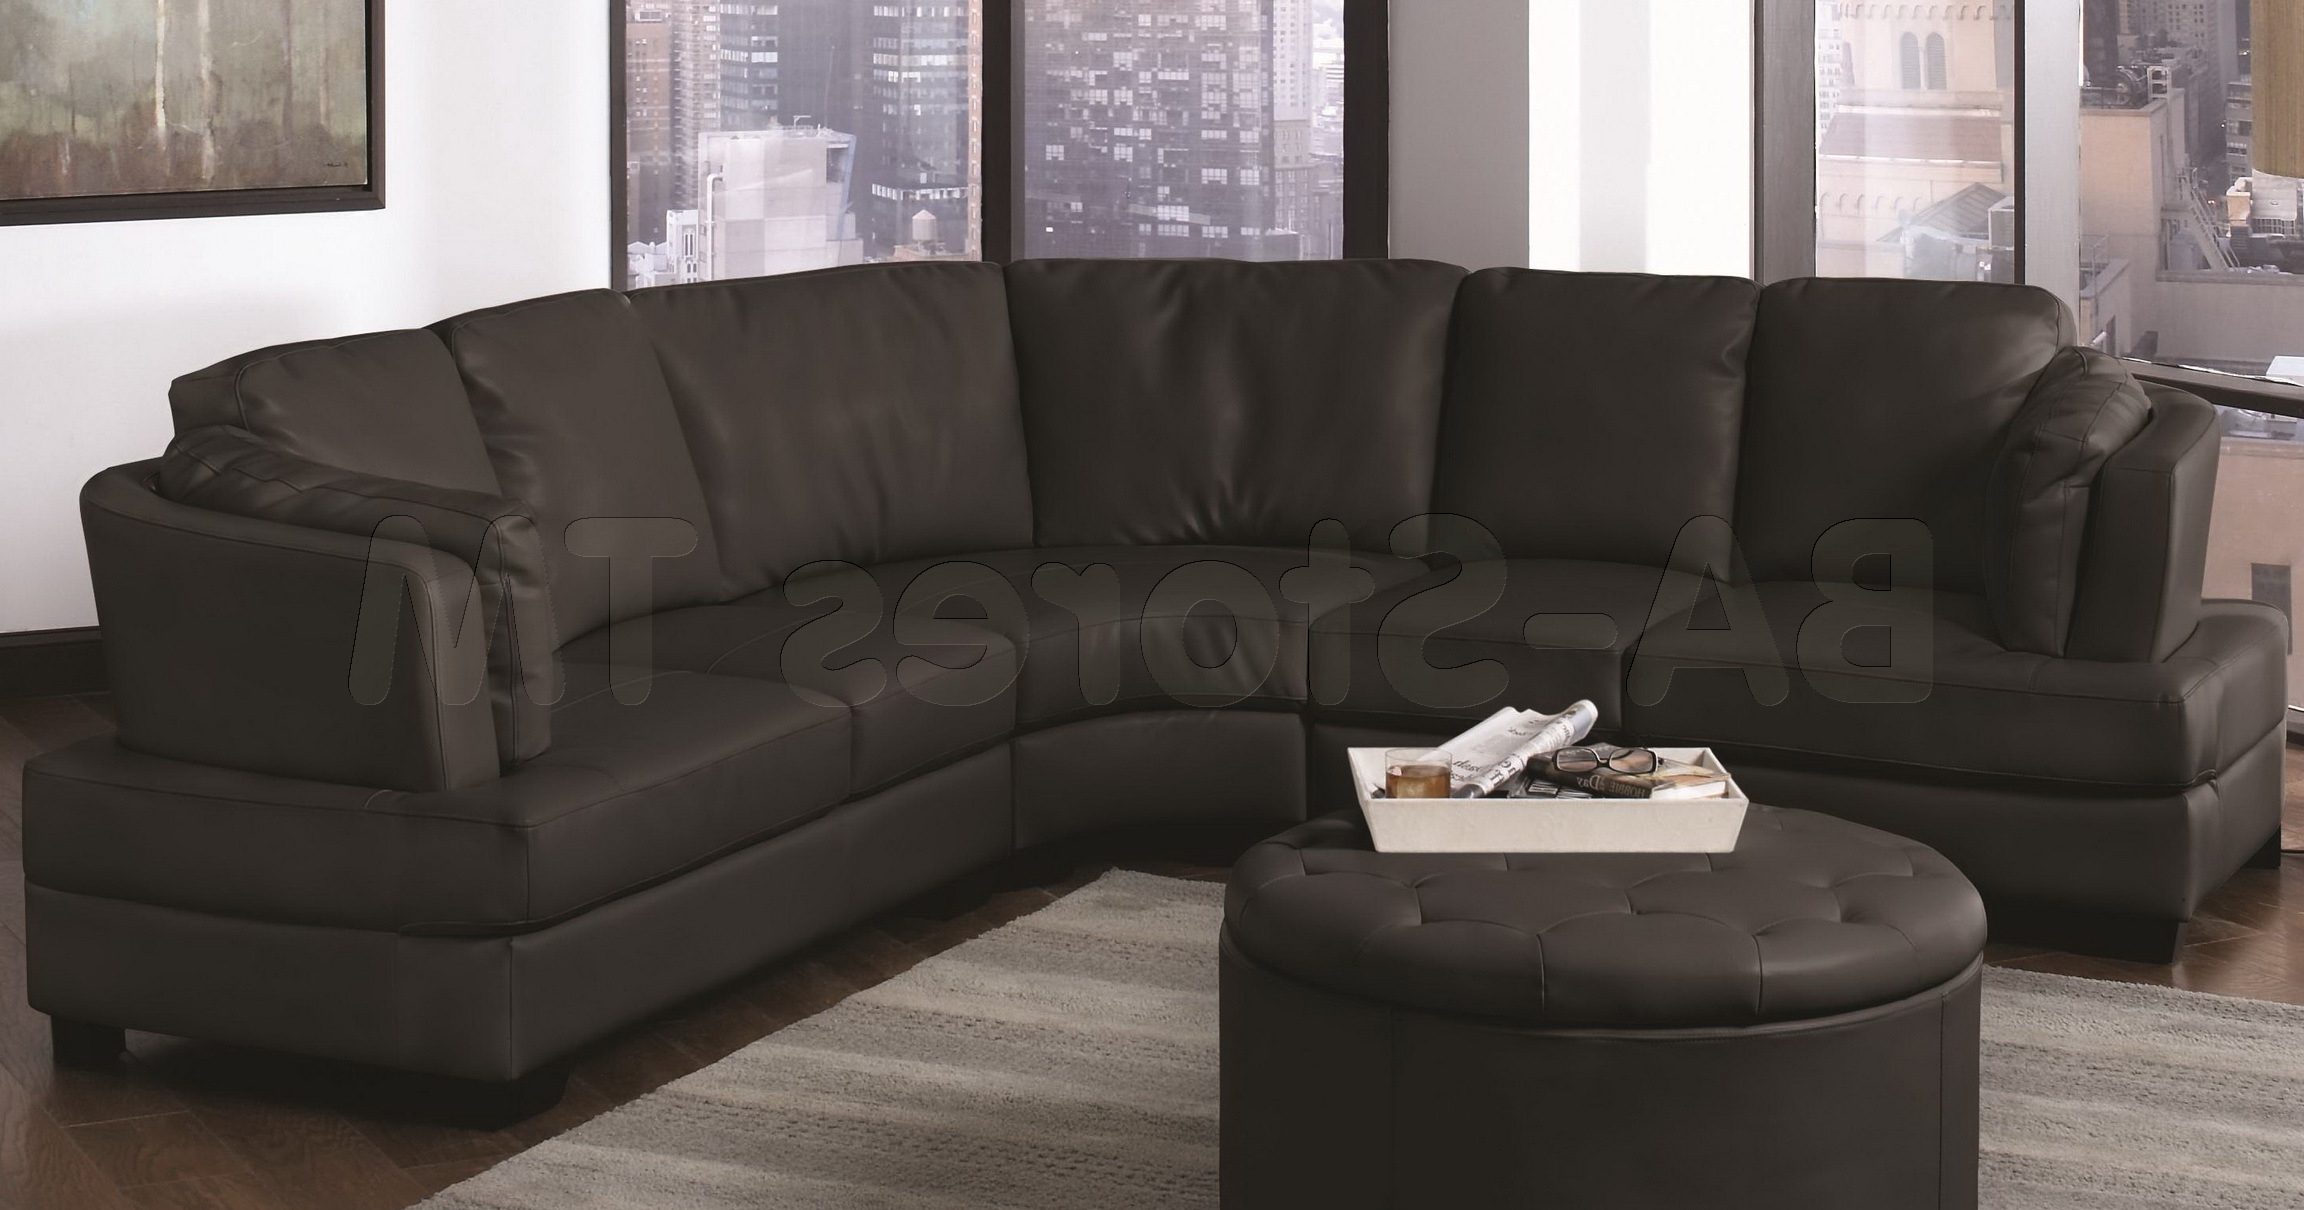 Popular Rounded Sofas With Regard To Trend Curved Sectional Sofa 99 On Contemporary Sofa Inspiration (View 12 of 20)